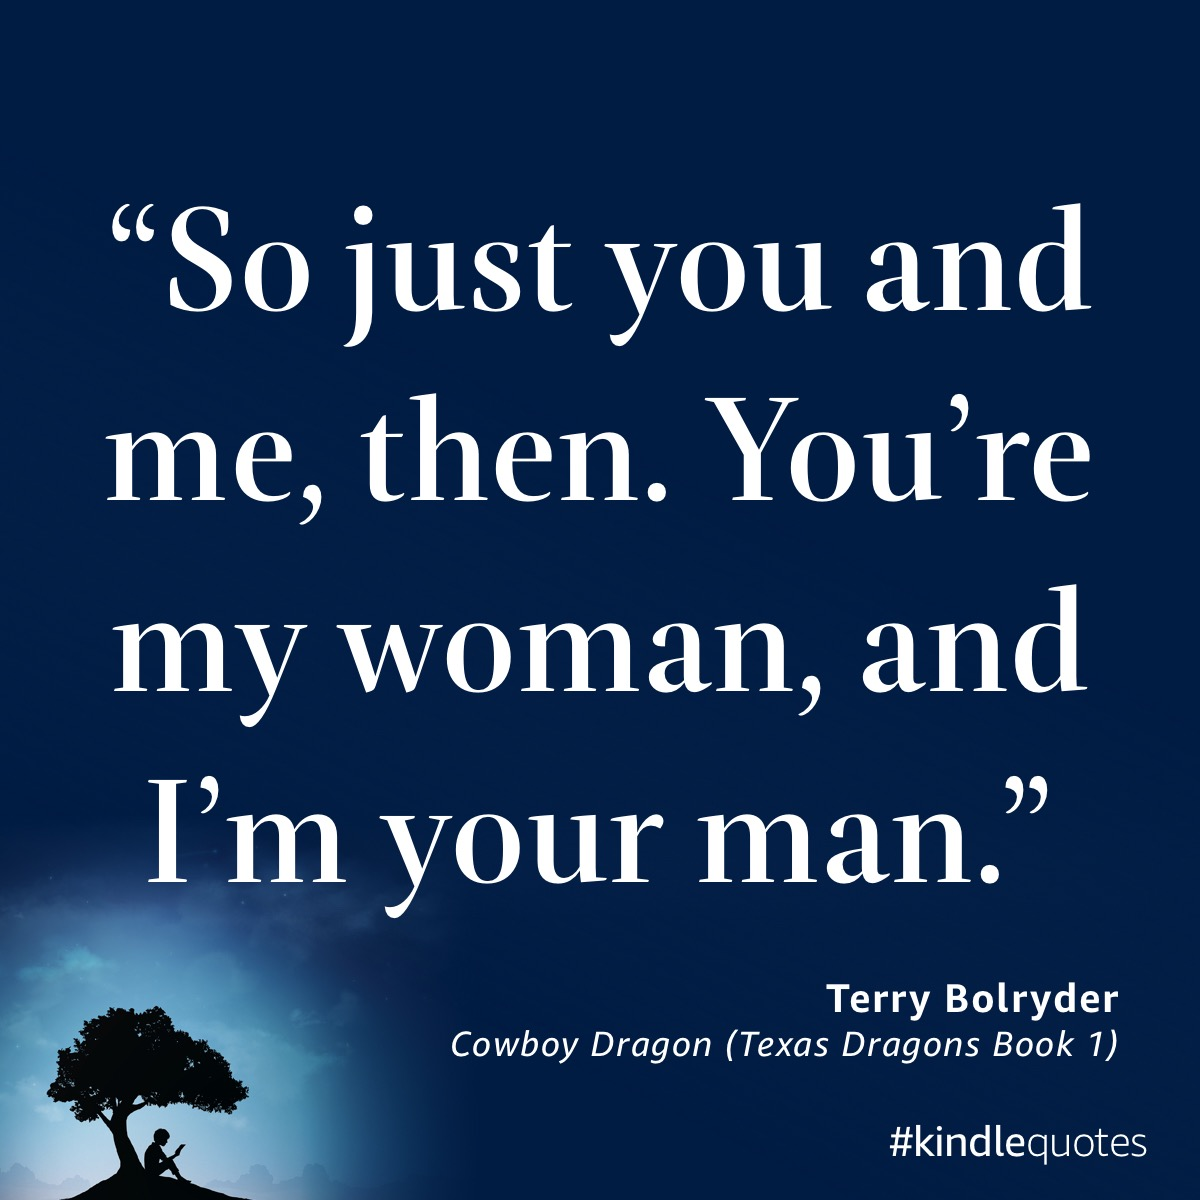 Book quote Terry Bolryder